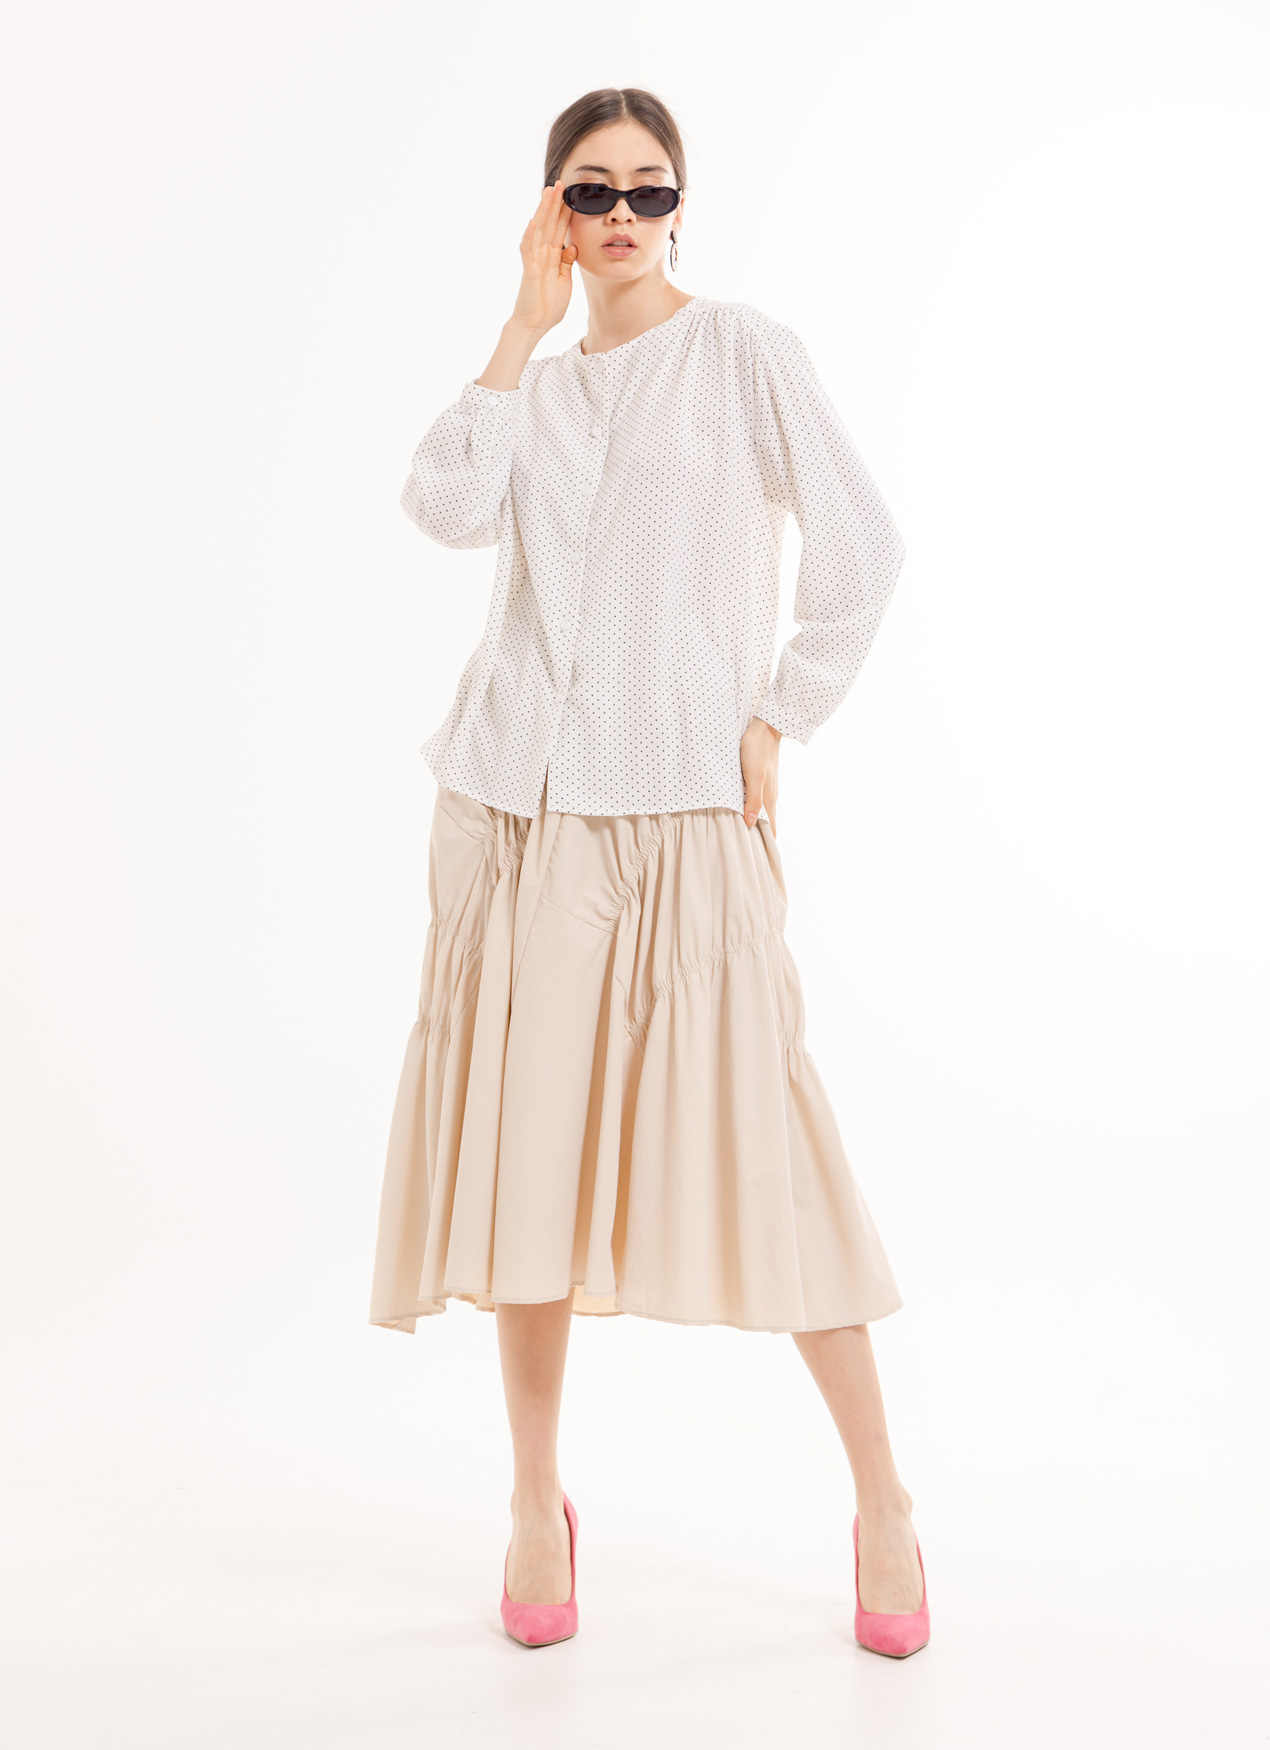 BOWN Cleophee Top - White